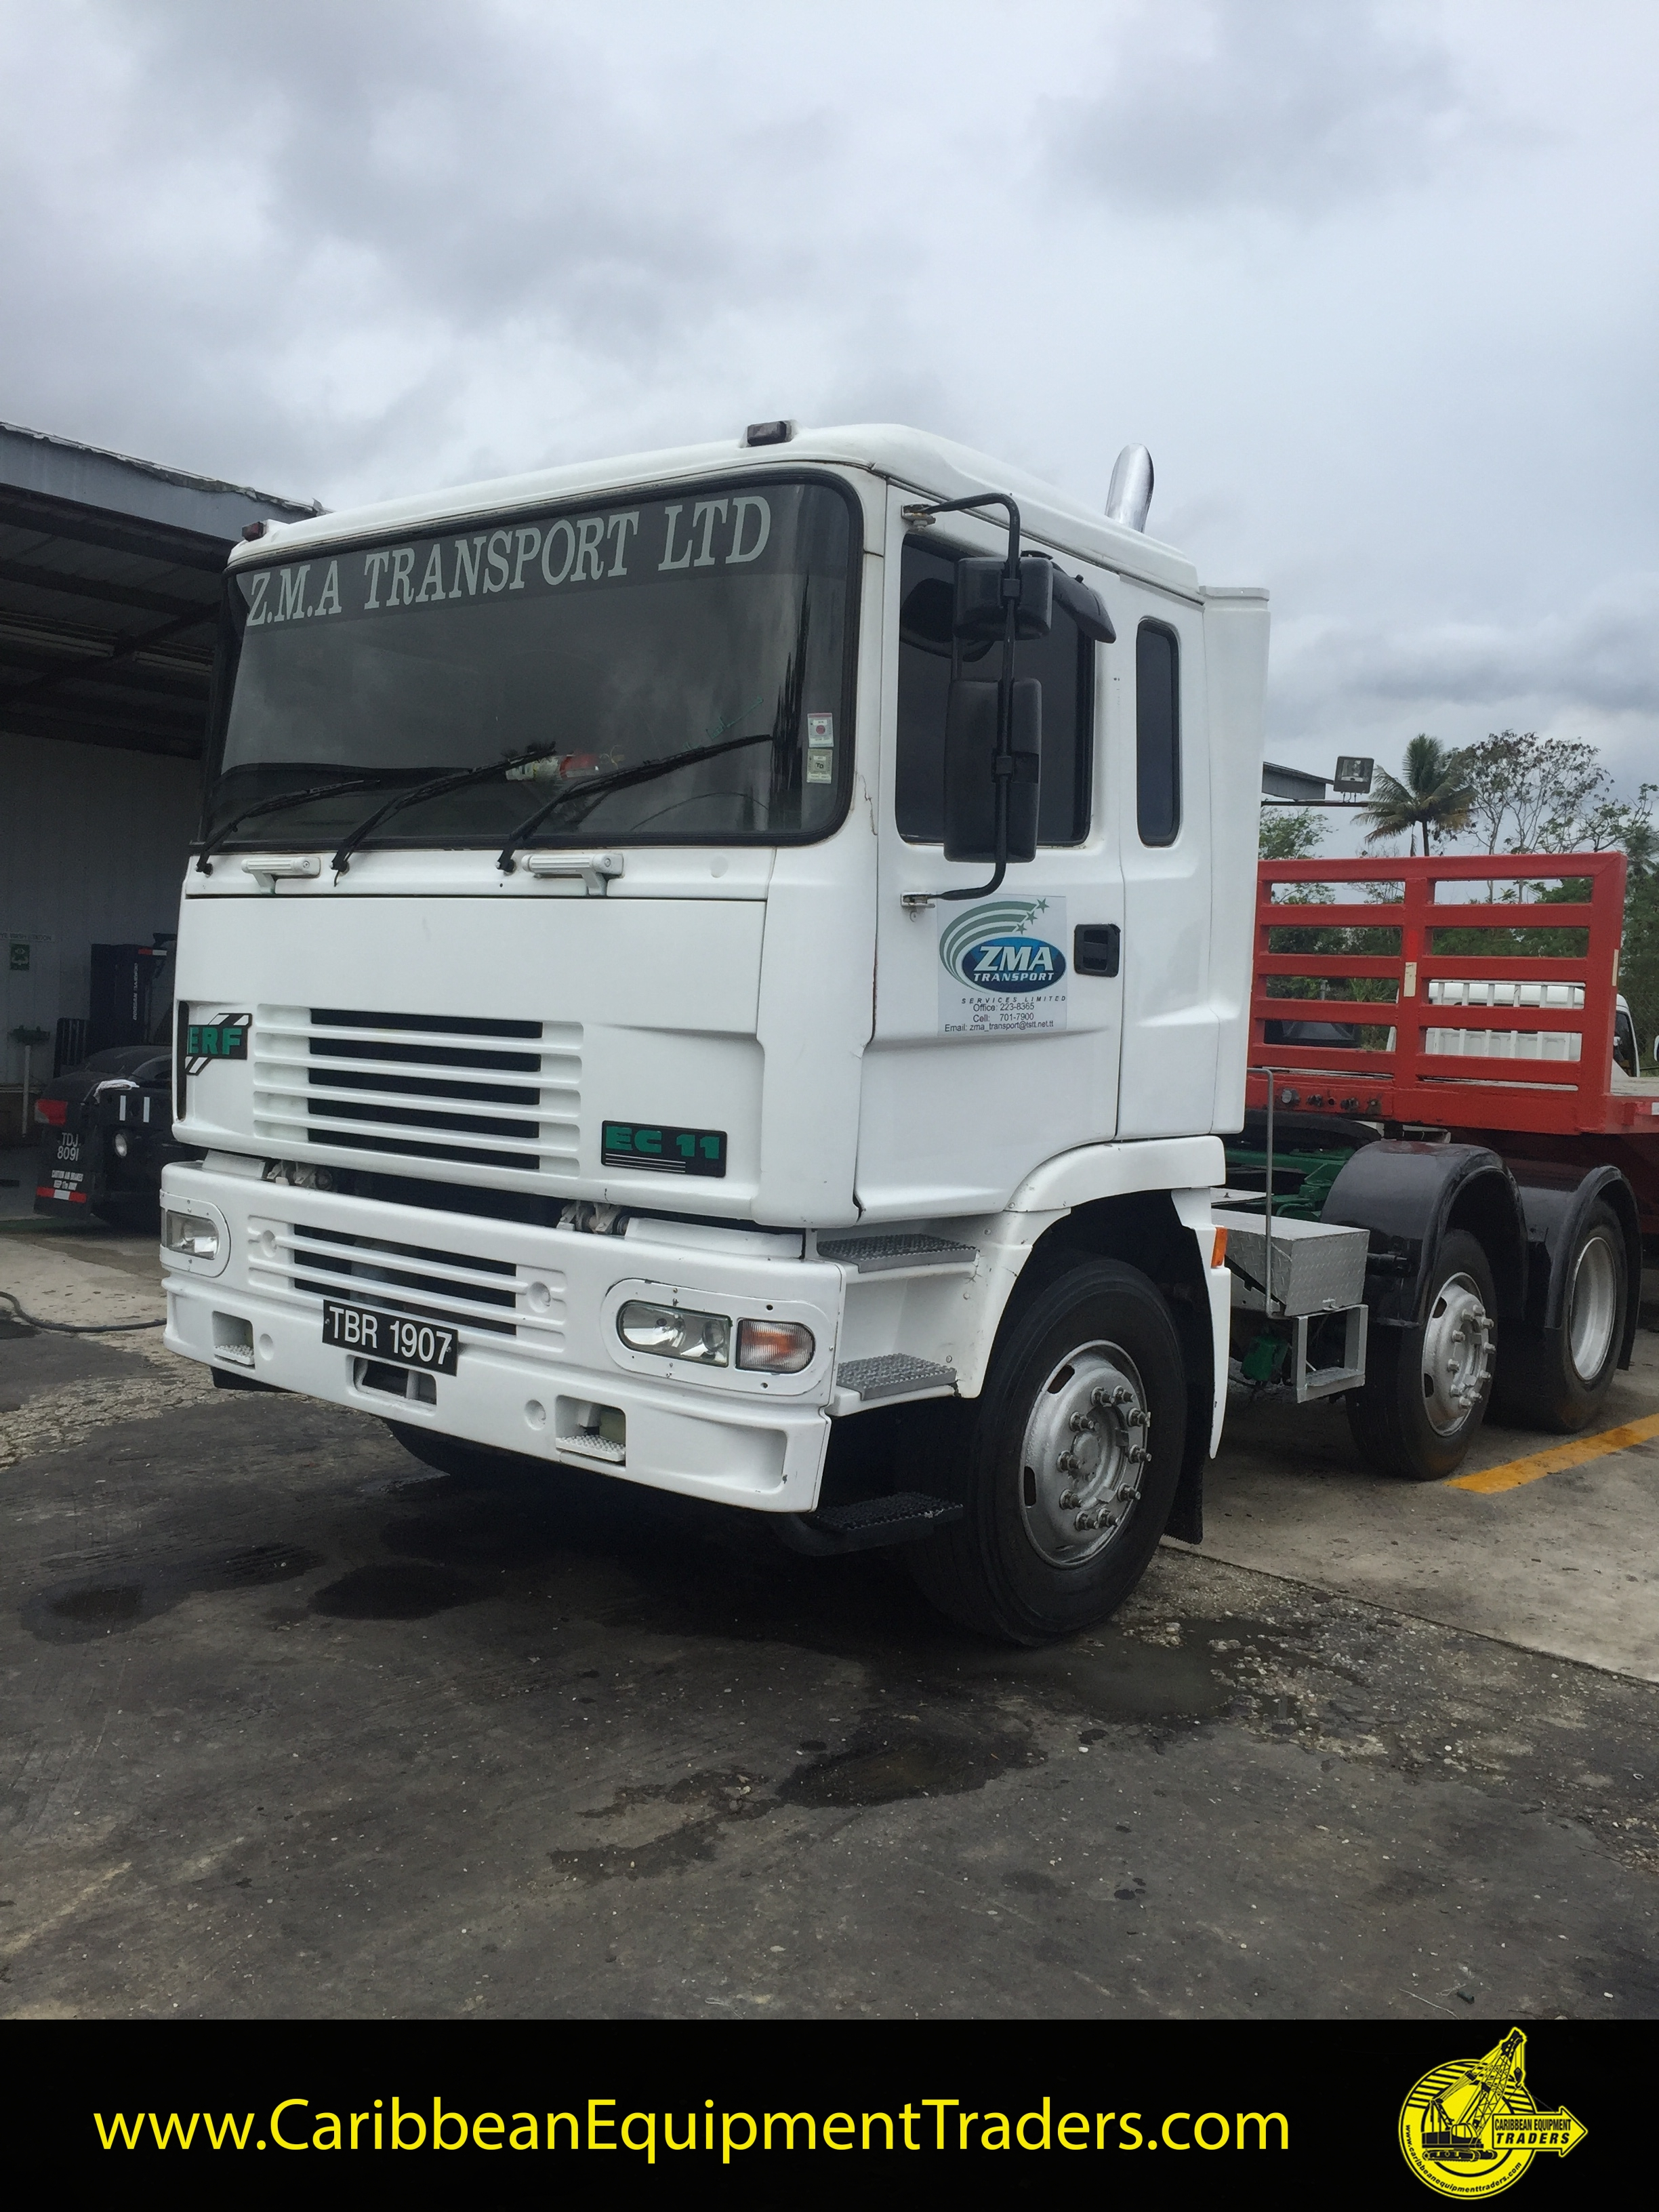 Erf Ec11 8 Wheeler Tractor Truck For Sale Caribbean